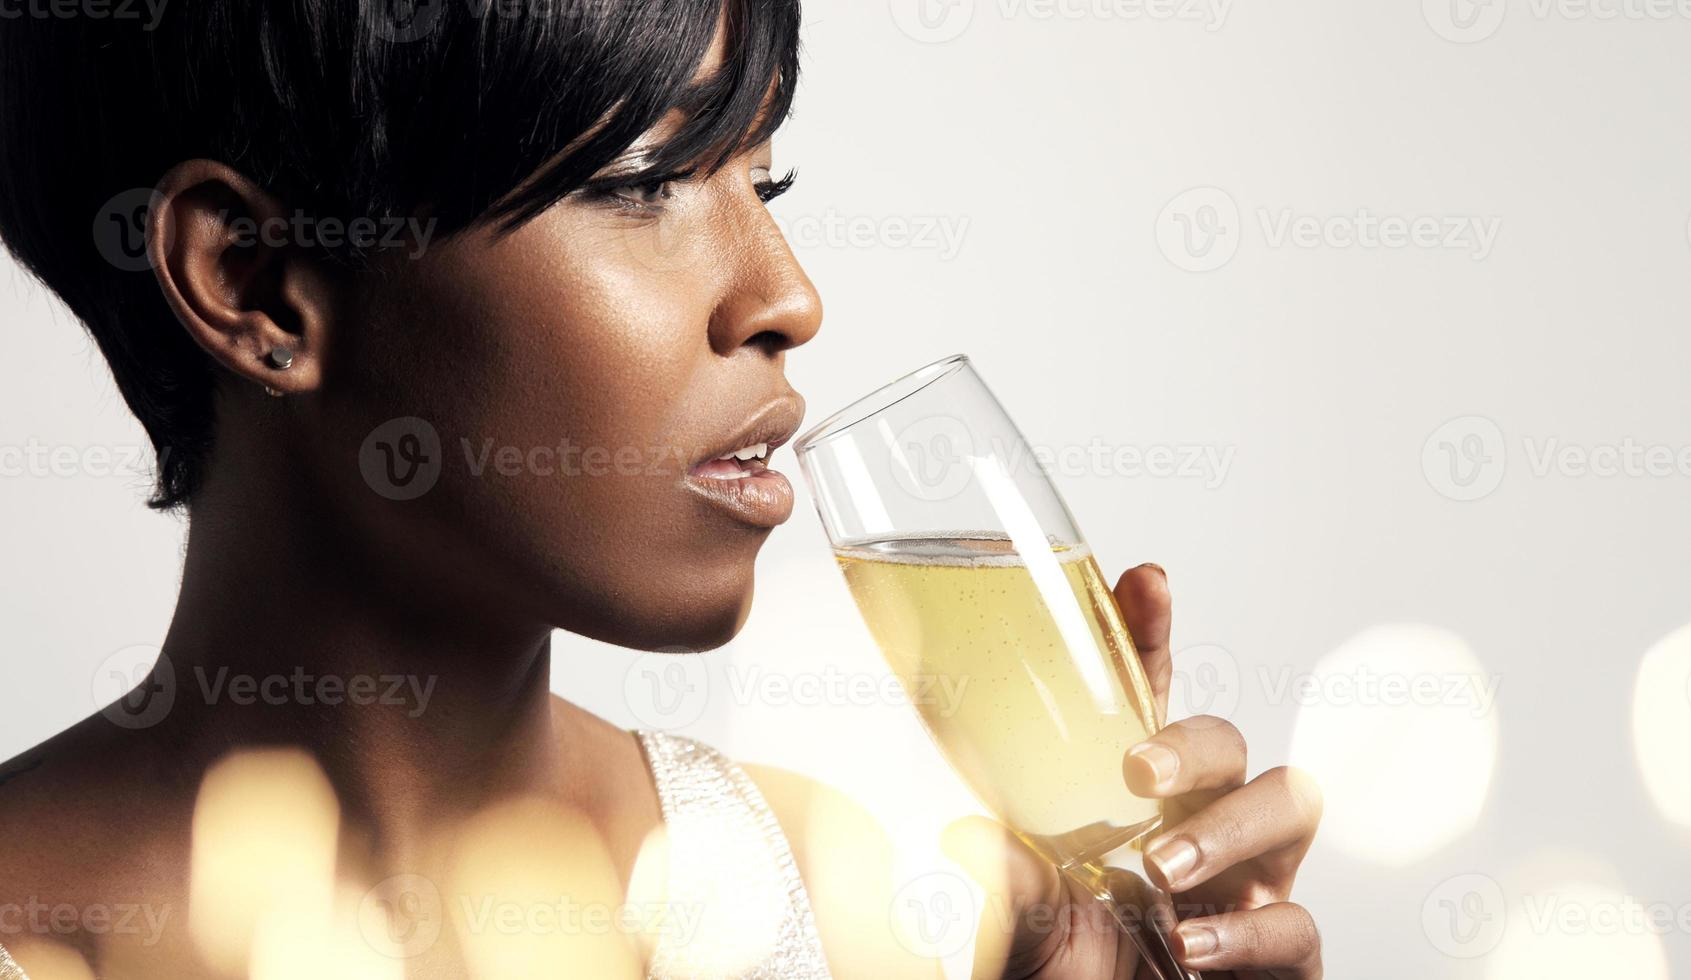 woman drinking from champagne glass photo